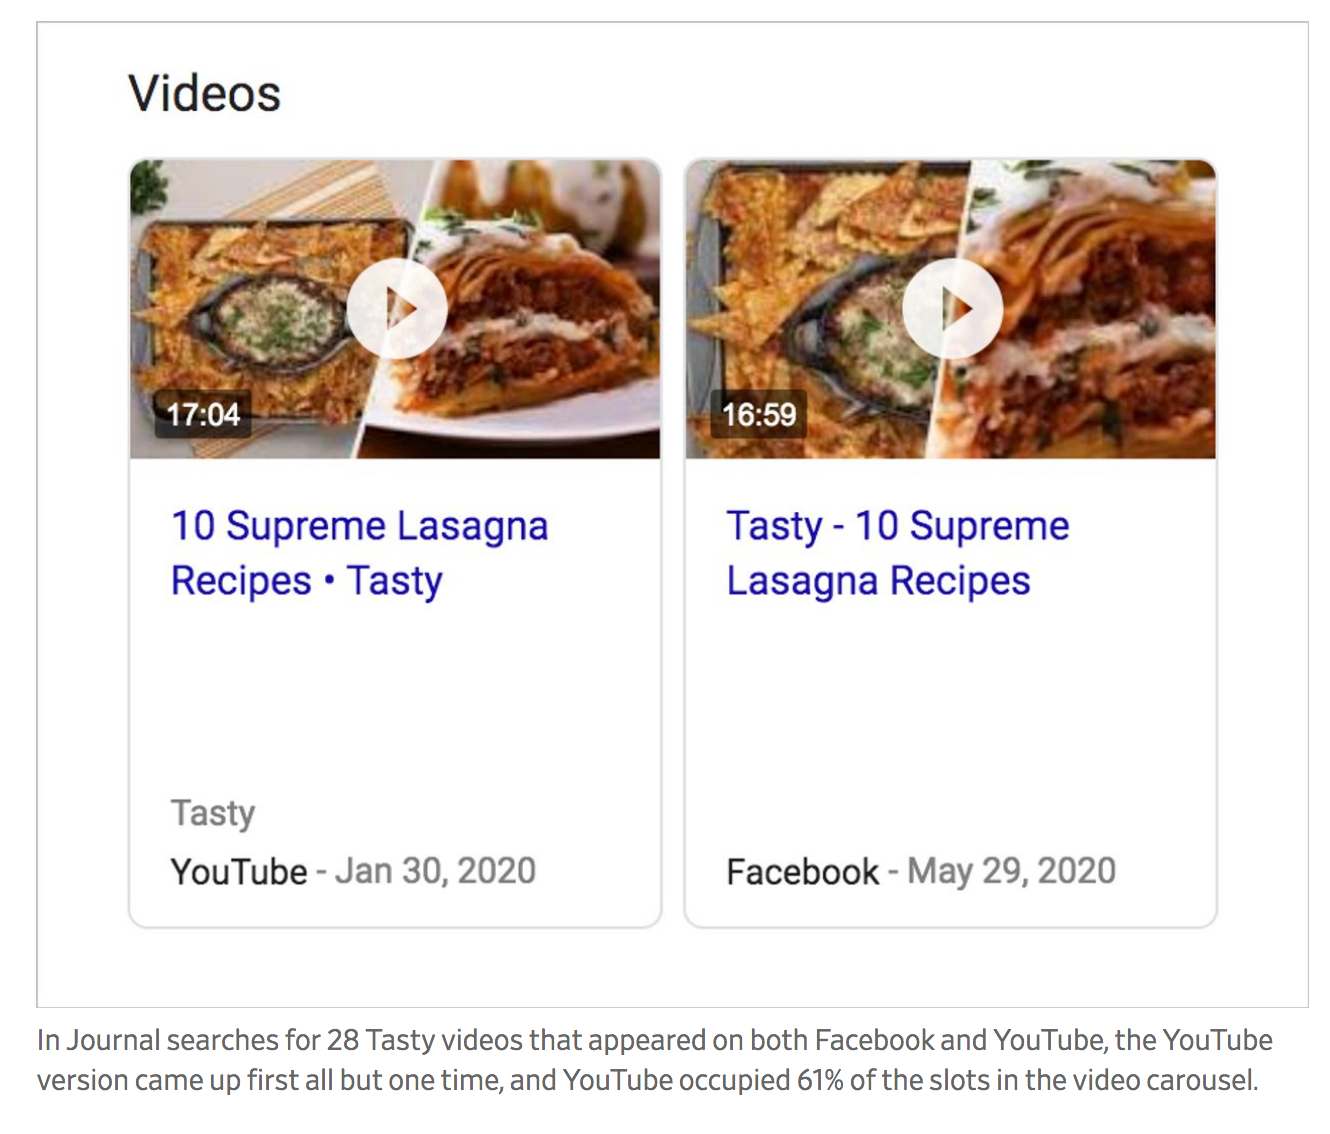 Google Is Not Your Friend. Google Steers Users To YouTube Over More Popular Rivals